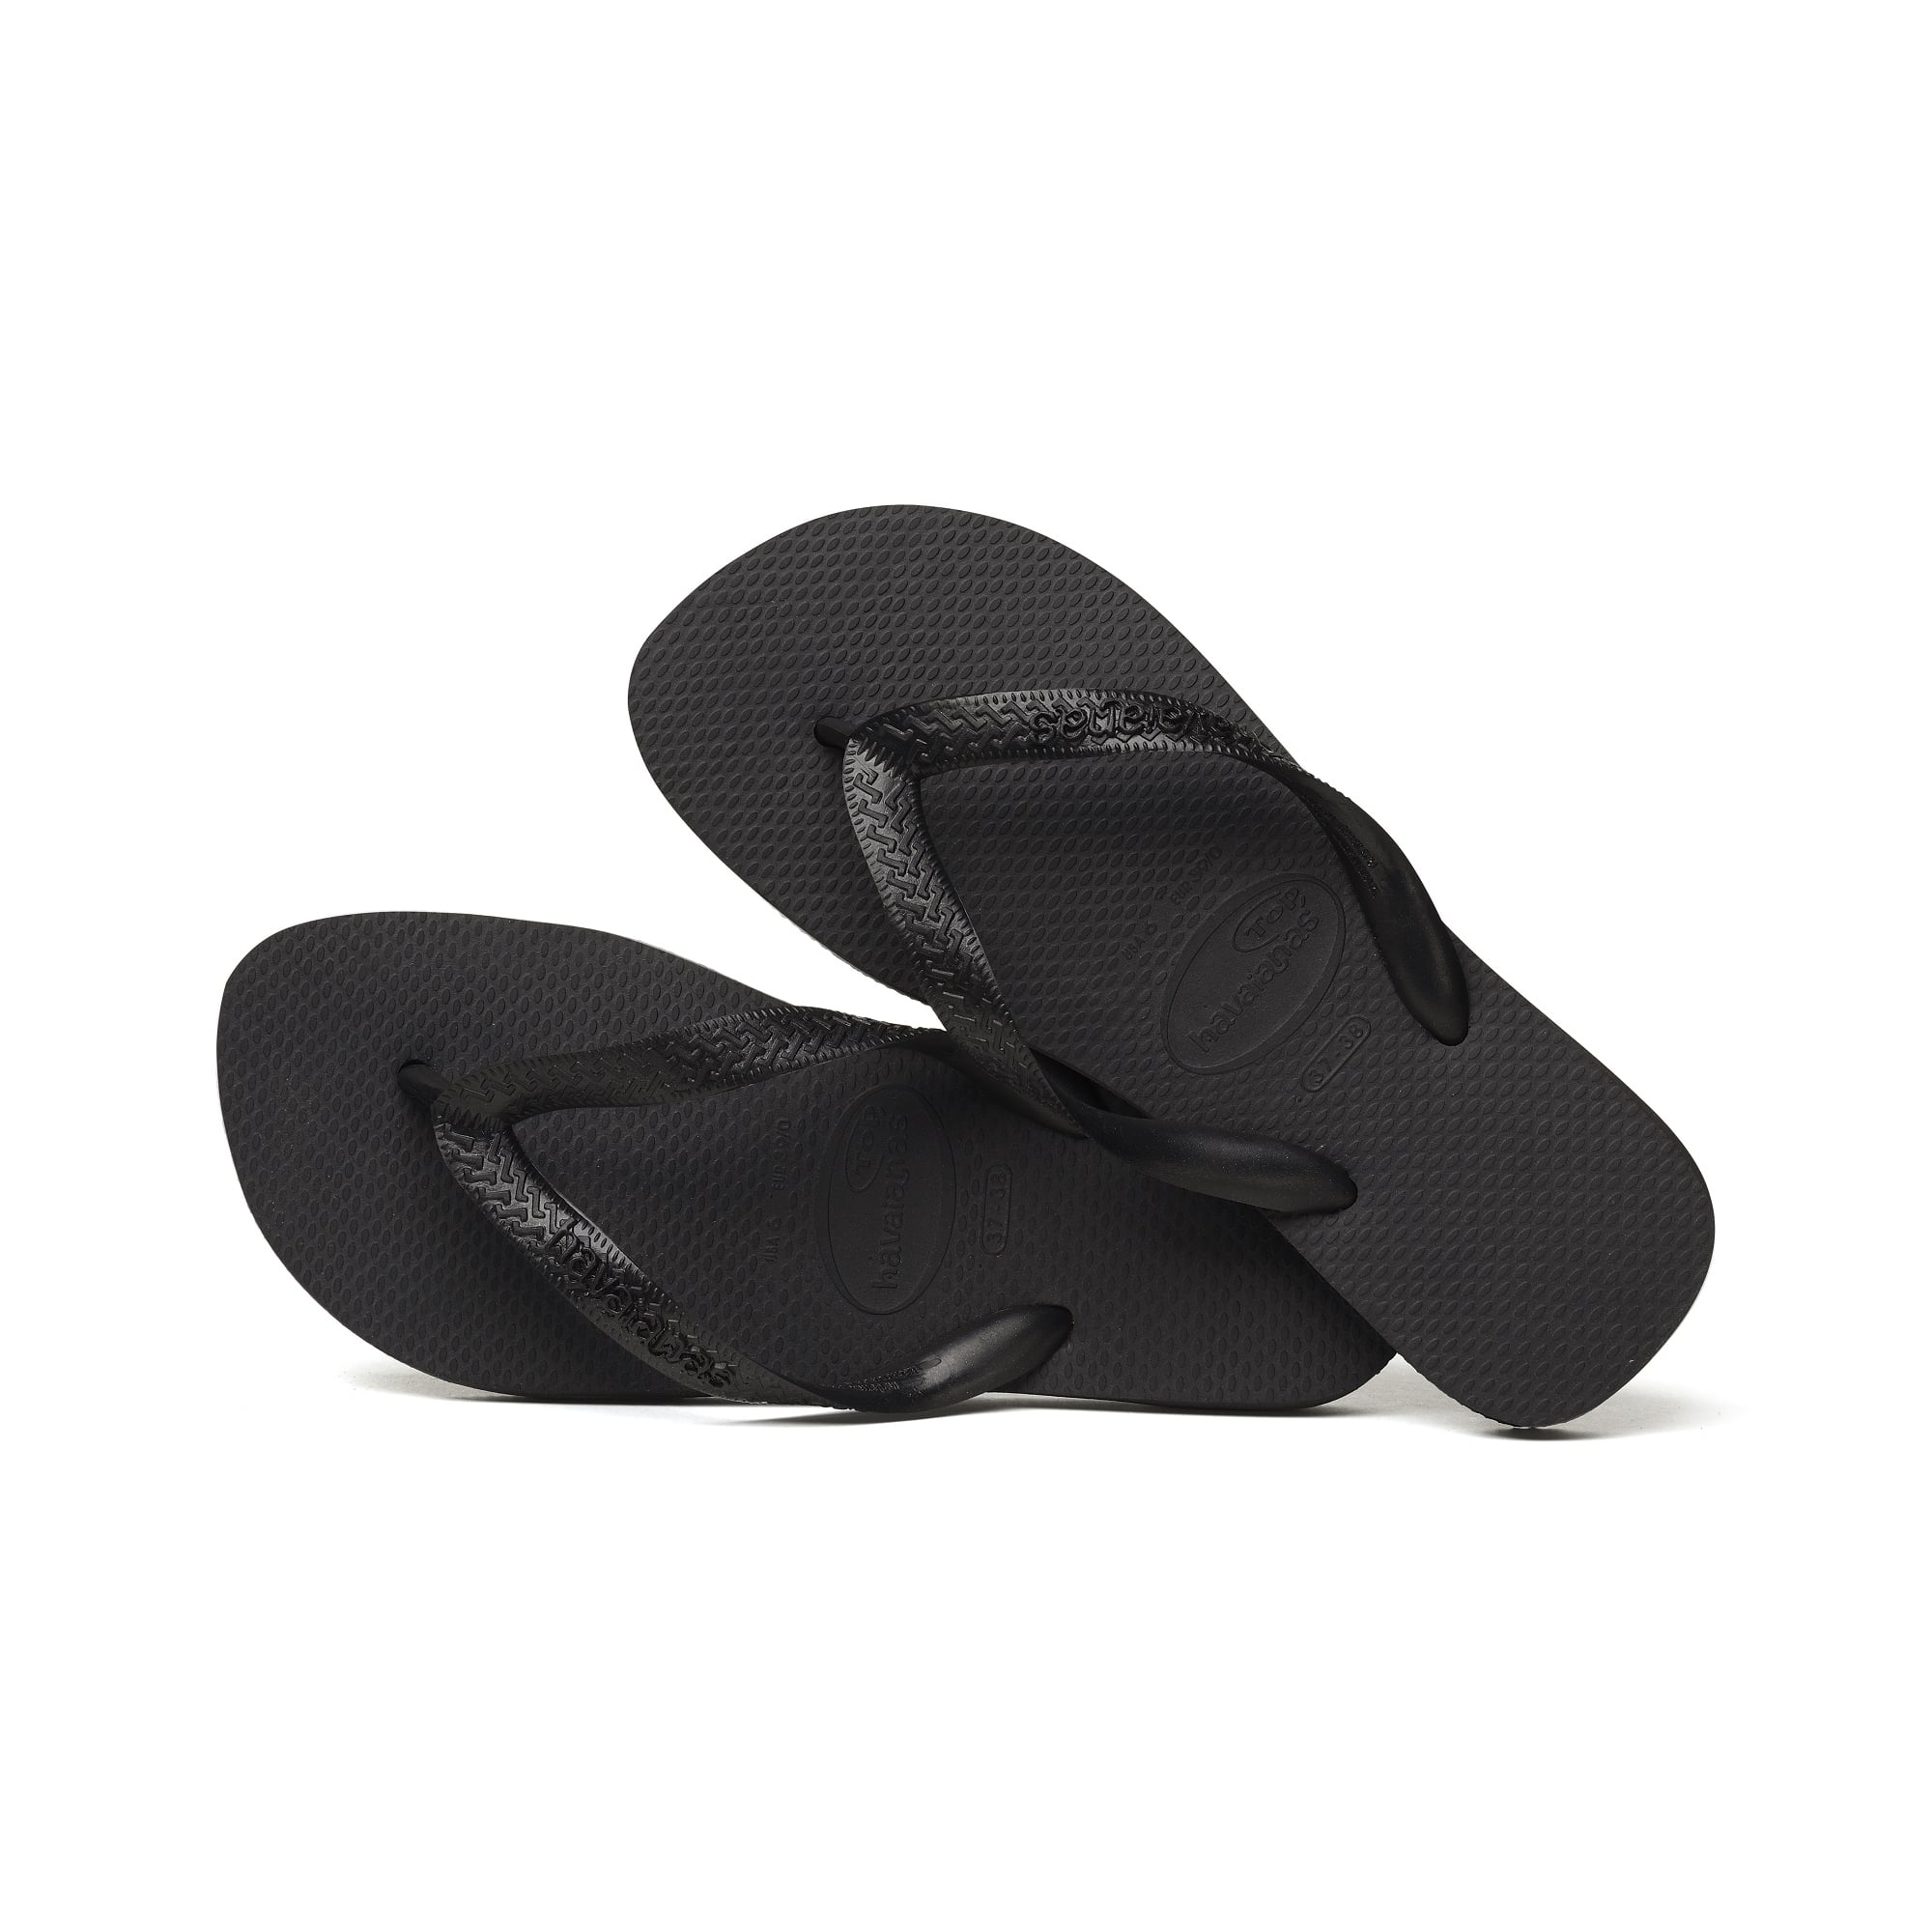 a9e63a00141 Havaianas Top Flip Flop in Black